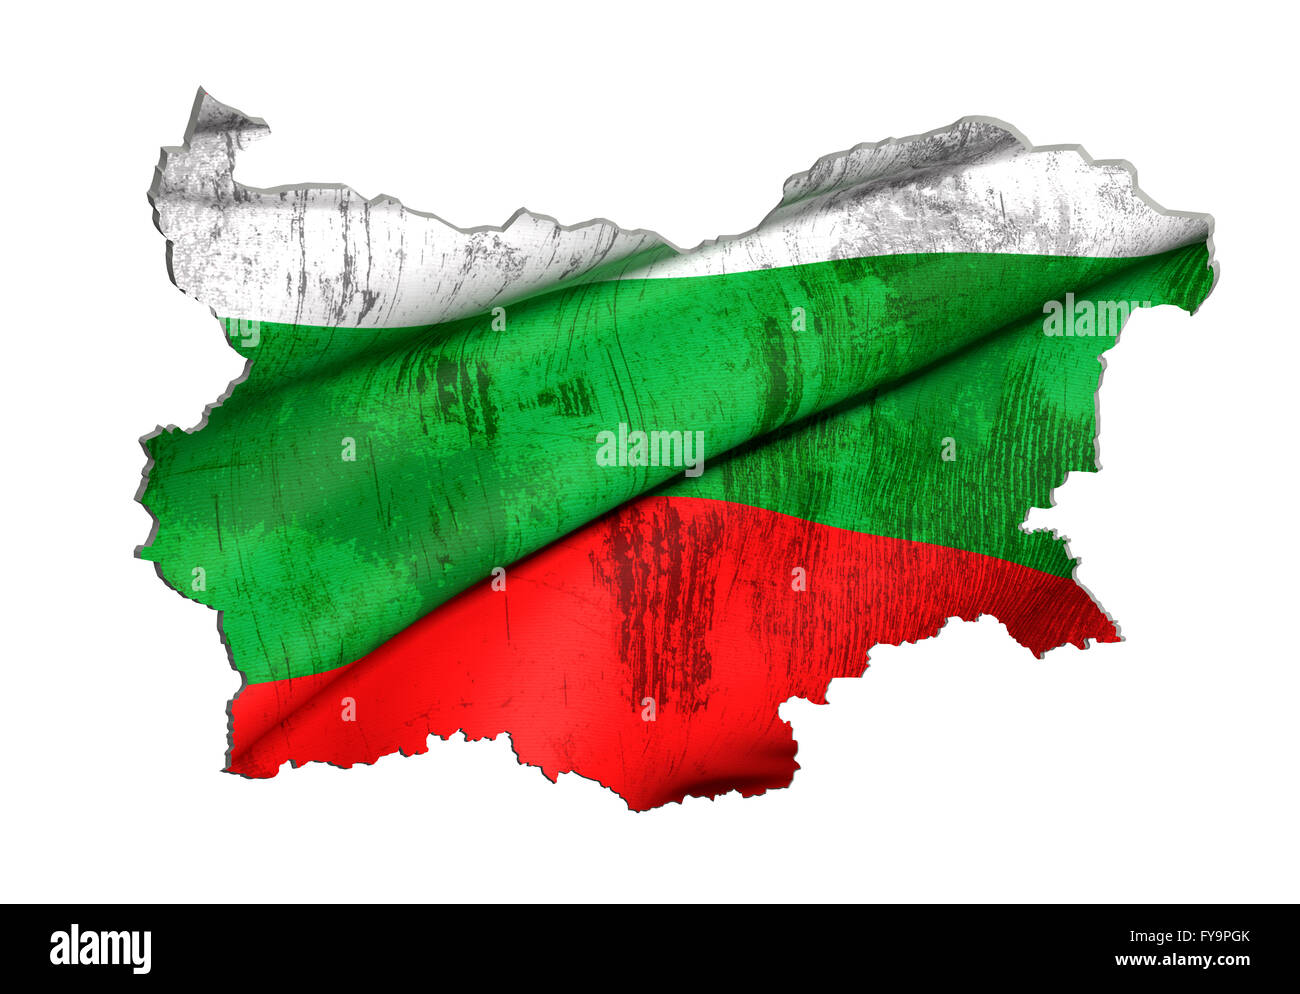 3d rendering of Bulgaria map and flag on white background. Stock Photo